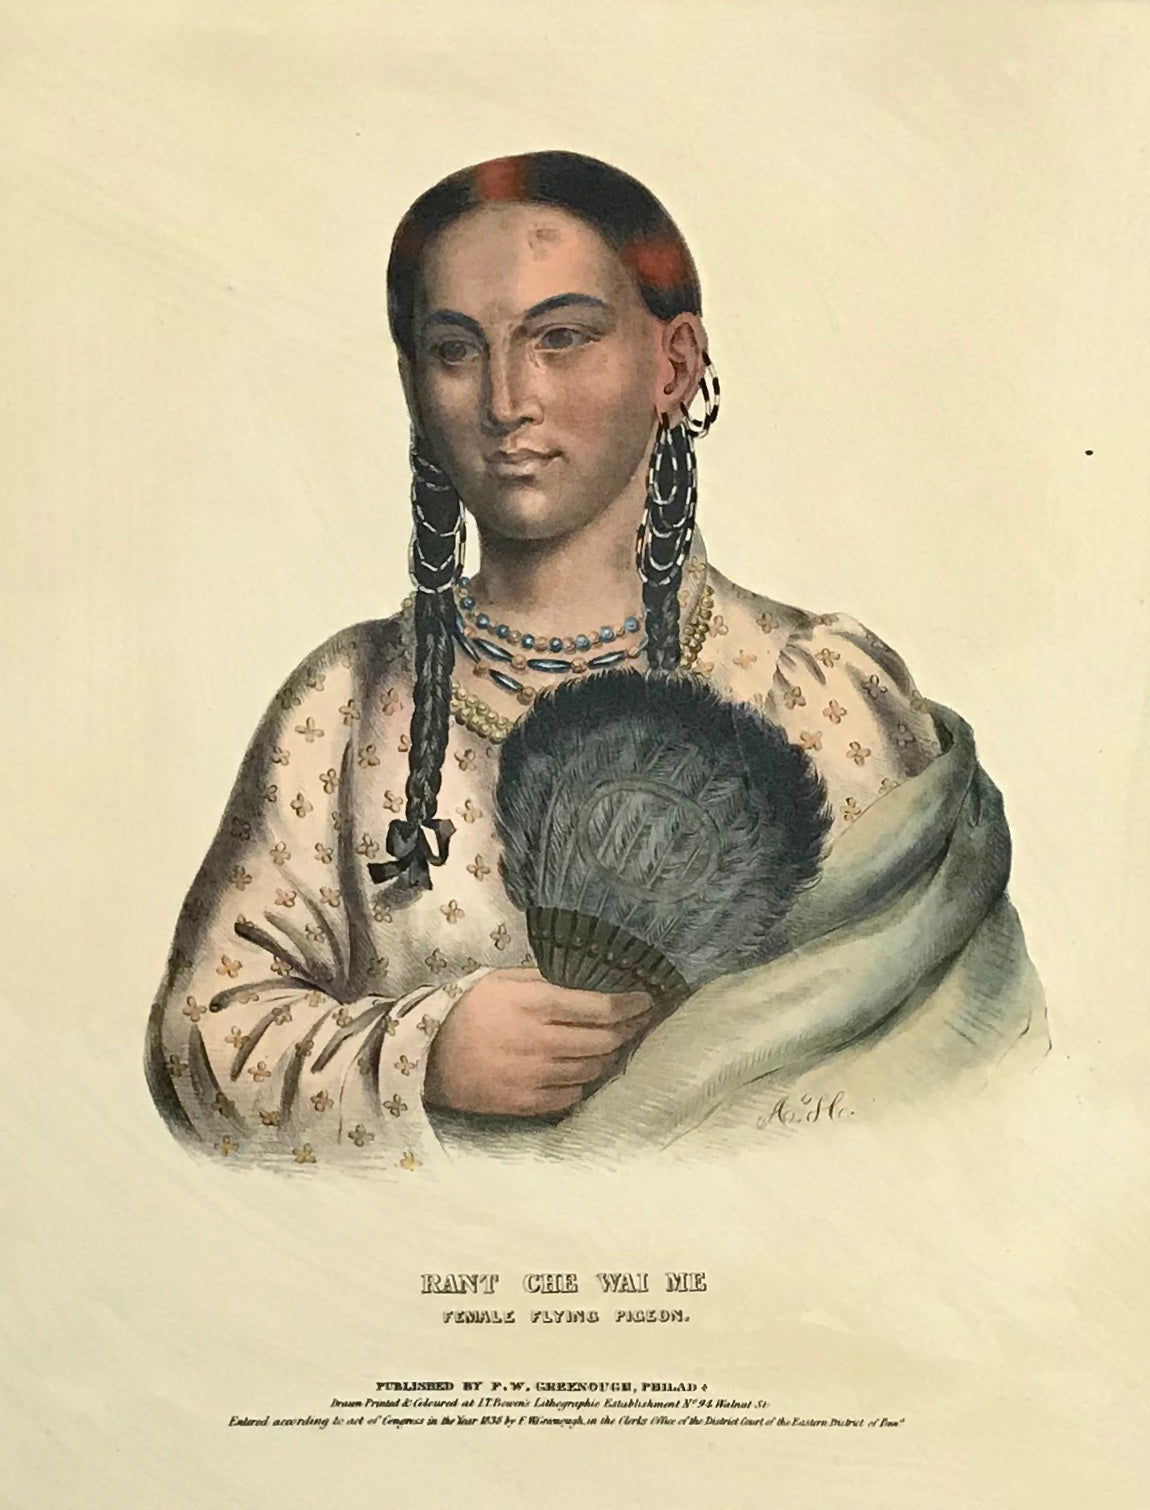 """Rant Che Wai Me Female Flying Pigeon"" Lithograph. Original hand coloring Painting by Charles Bird King (1785-1862) Published in: ""History of the Indian Tribes of North America"" Authors: Thomas Loraine McKenny (1785-1859) and James Hall (1793-1868) Folio edition"